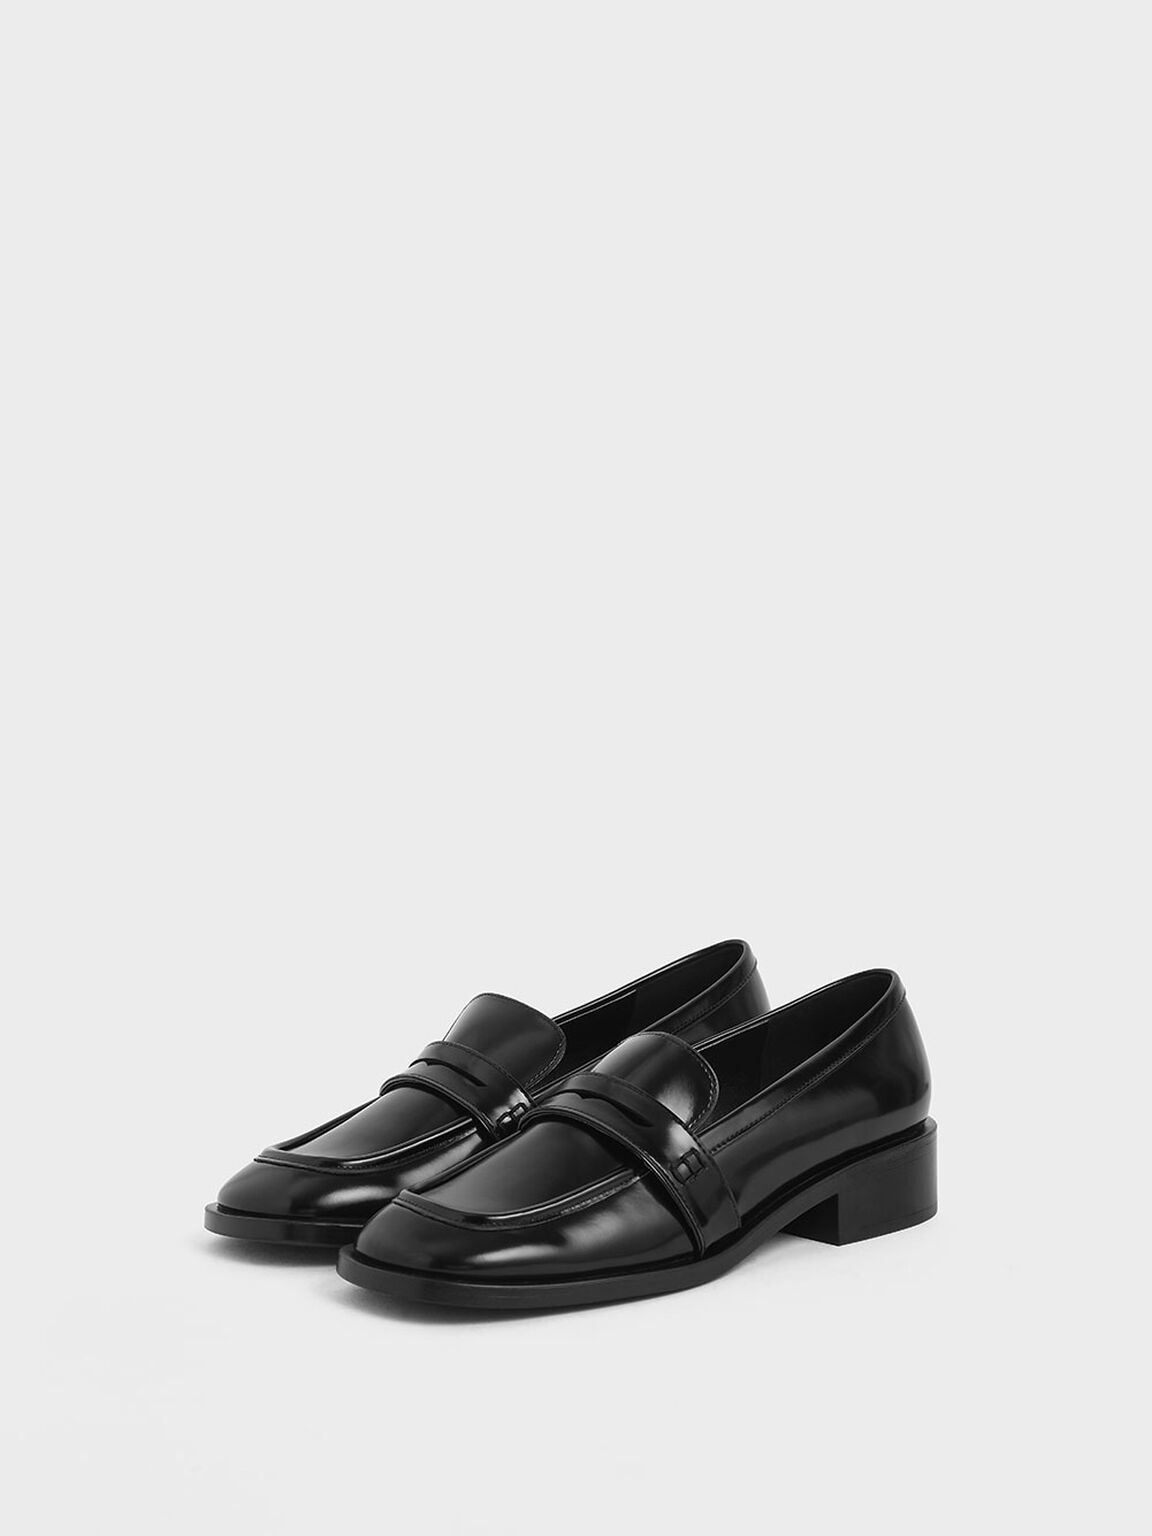 Glossy Finish Penny Loafers, Black, hi-res